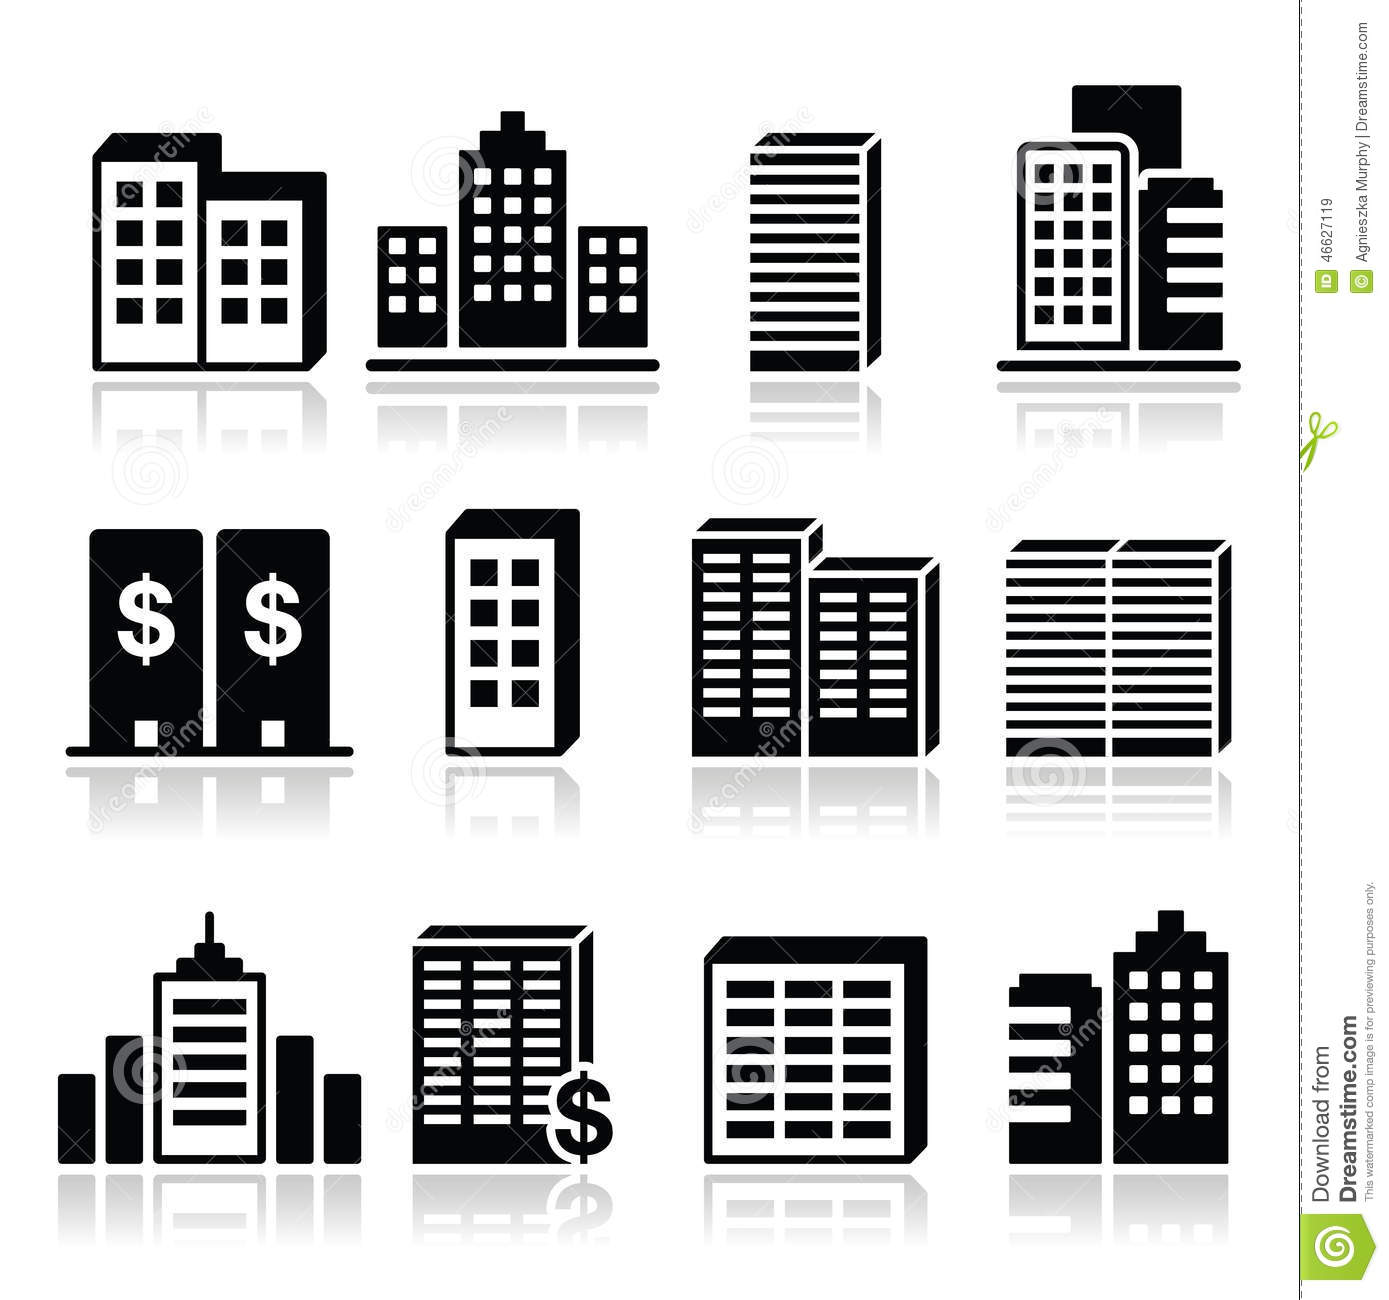 12 Icon Building Block Business Images